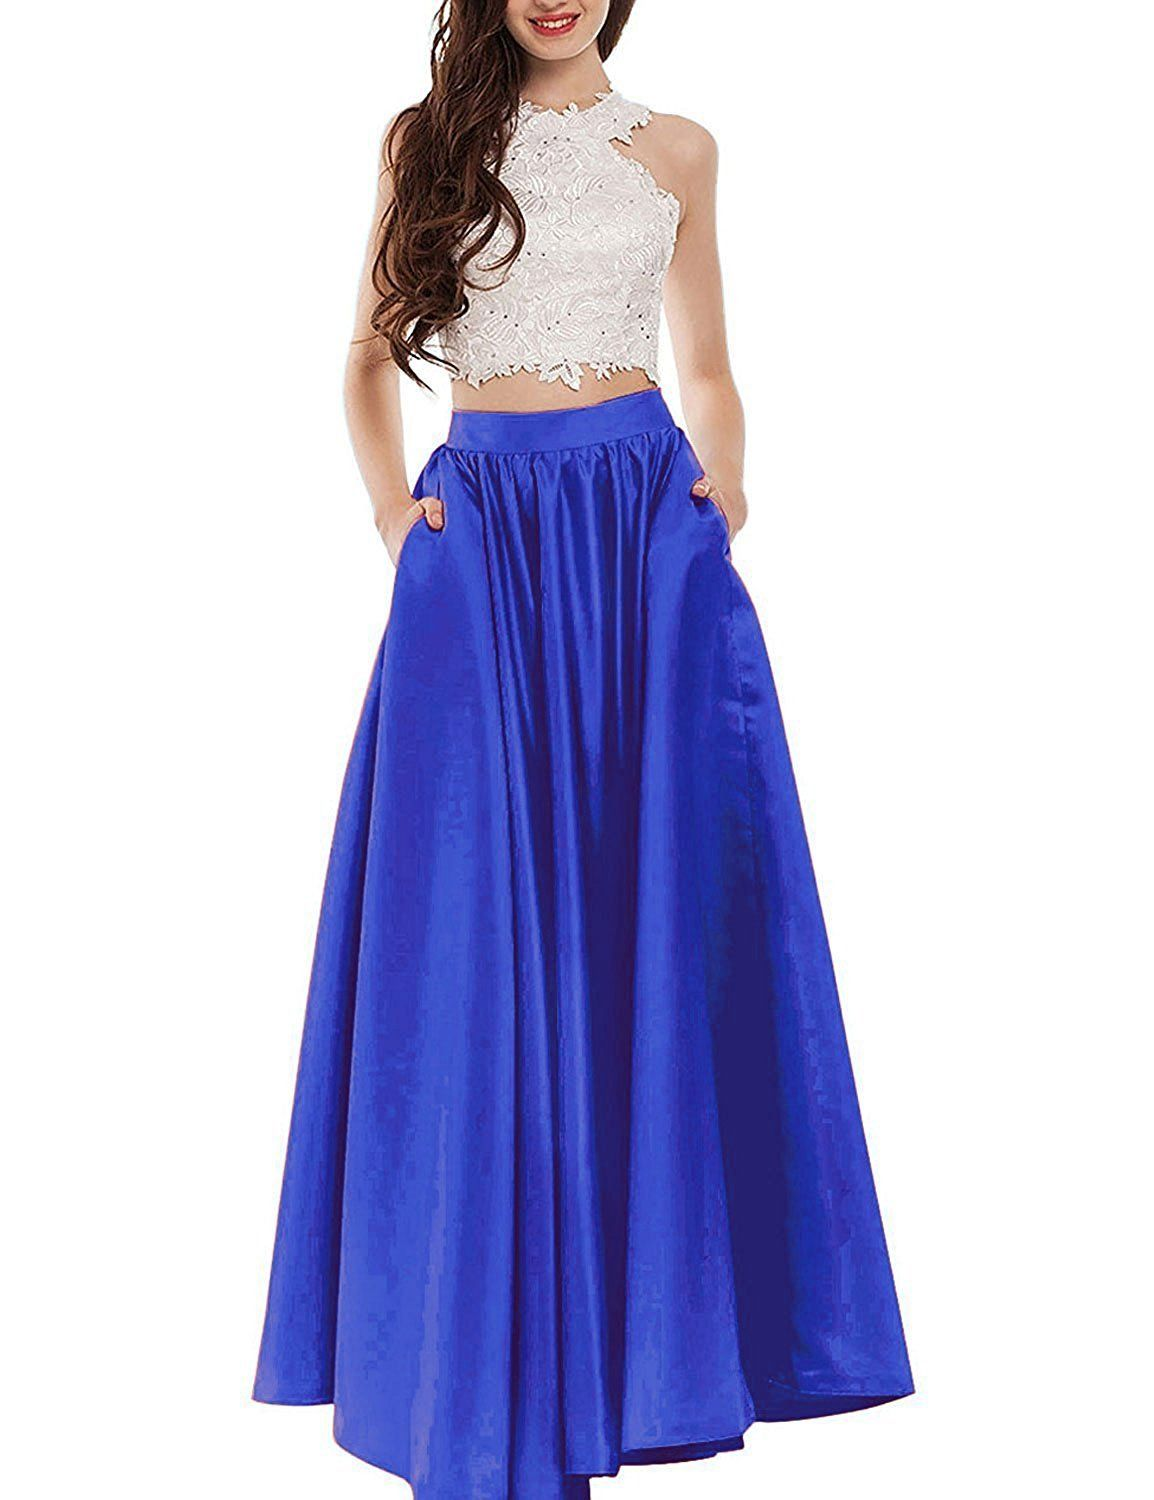 Trendprom two pieces satin floor length long prom dresses size us